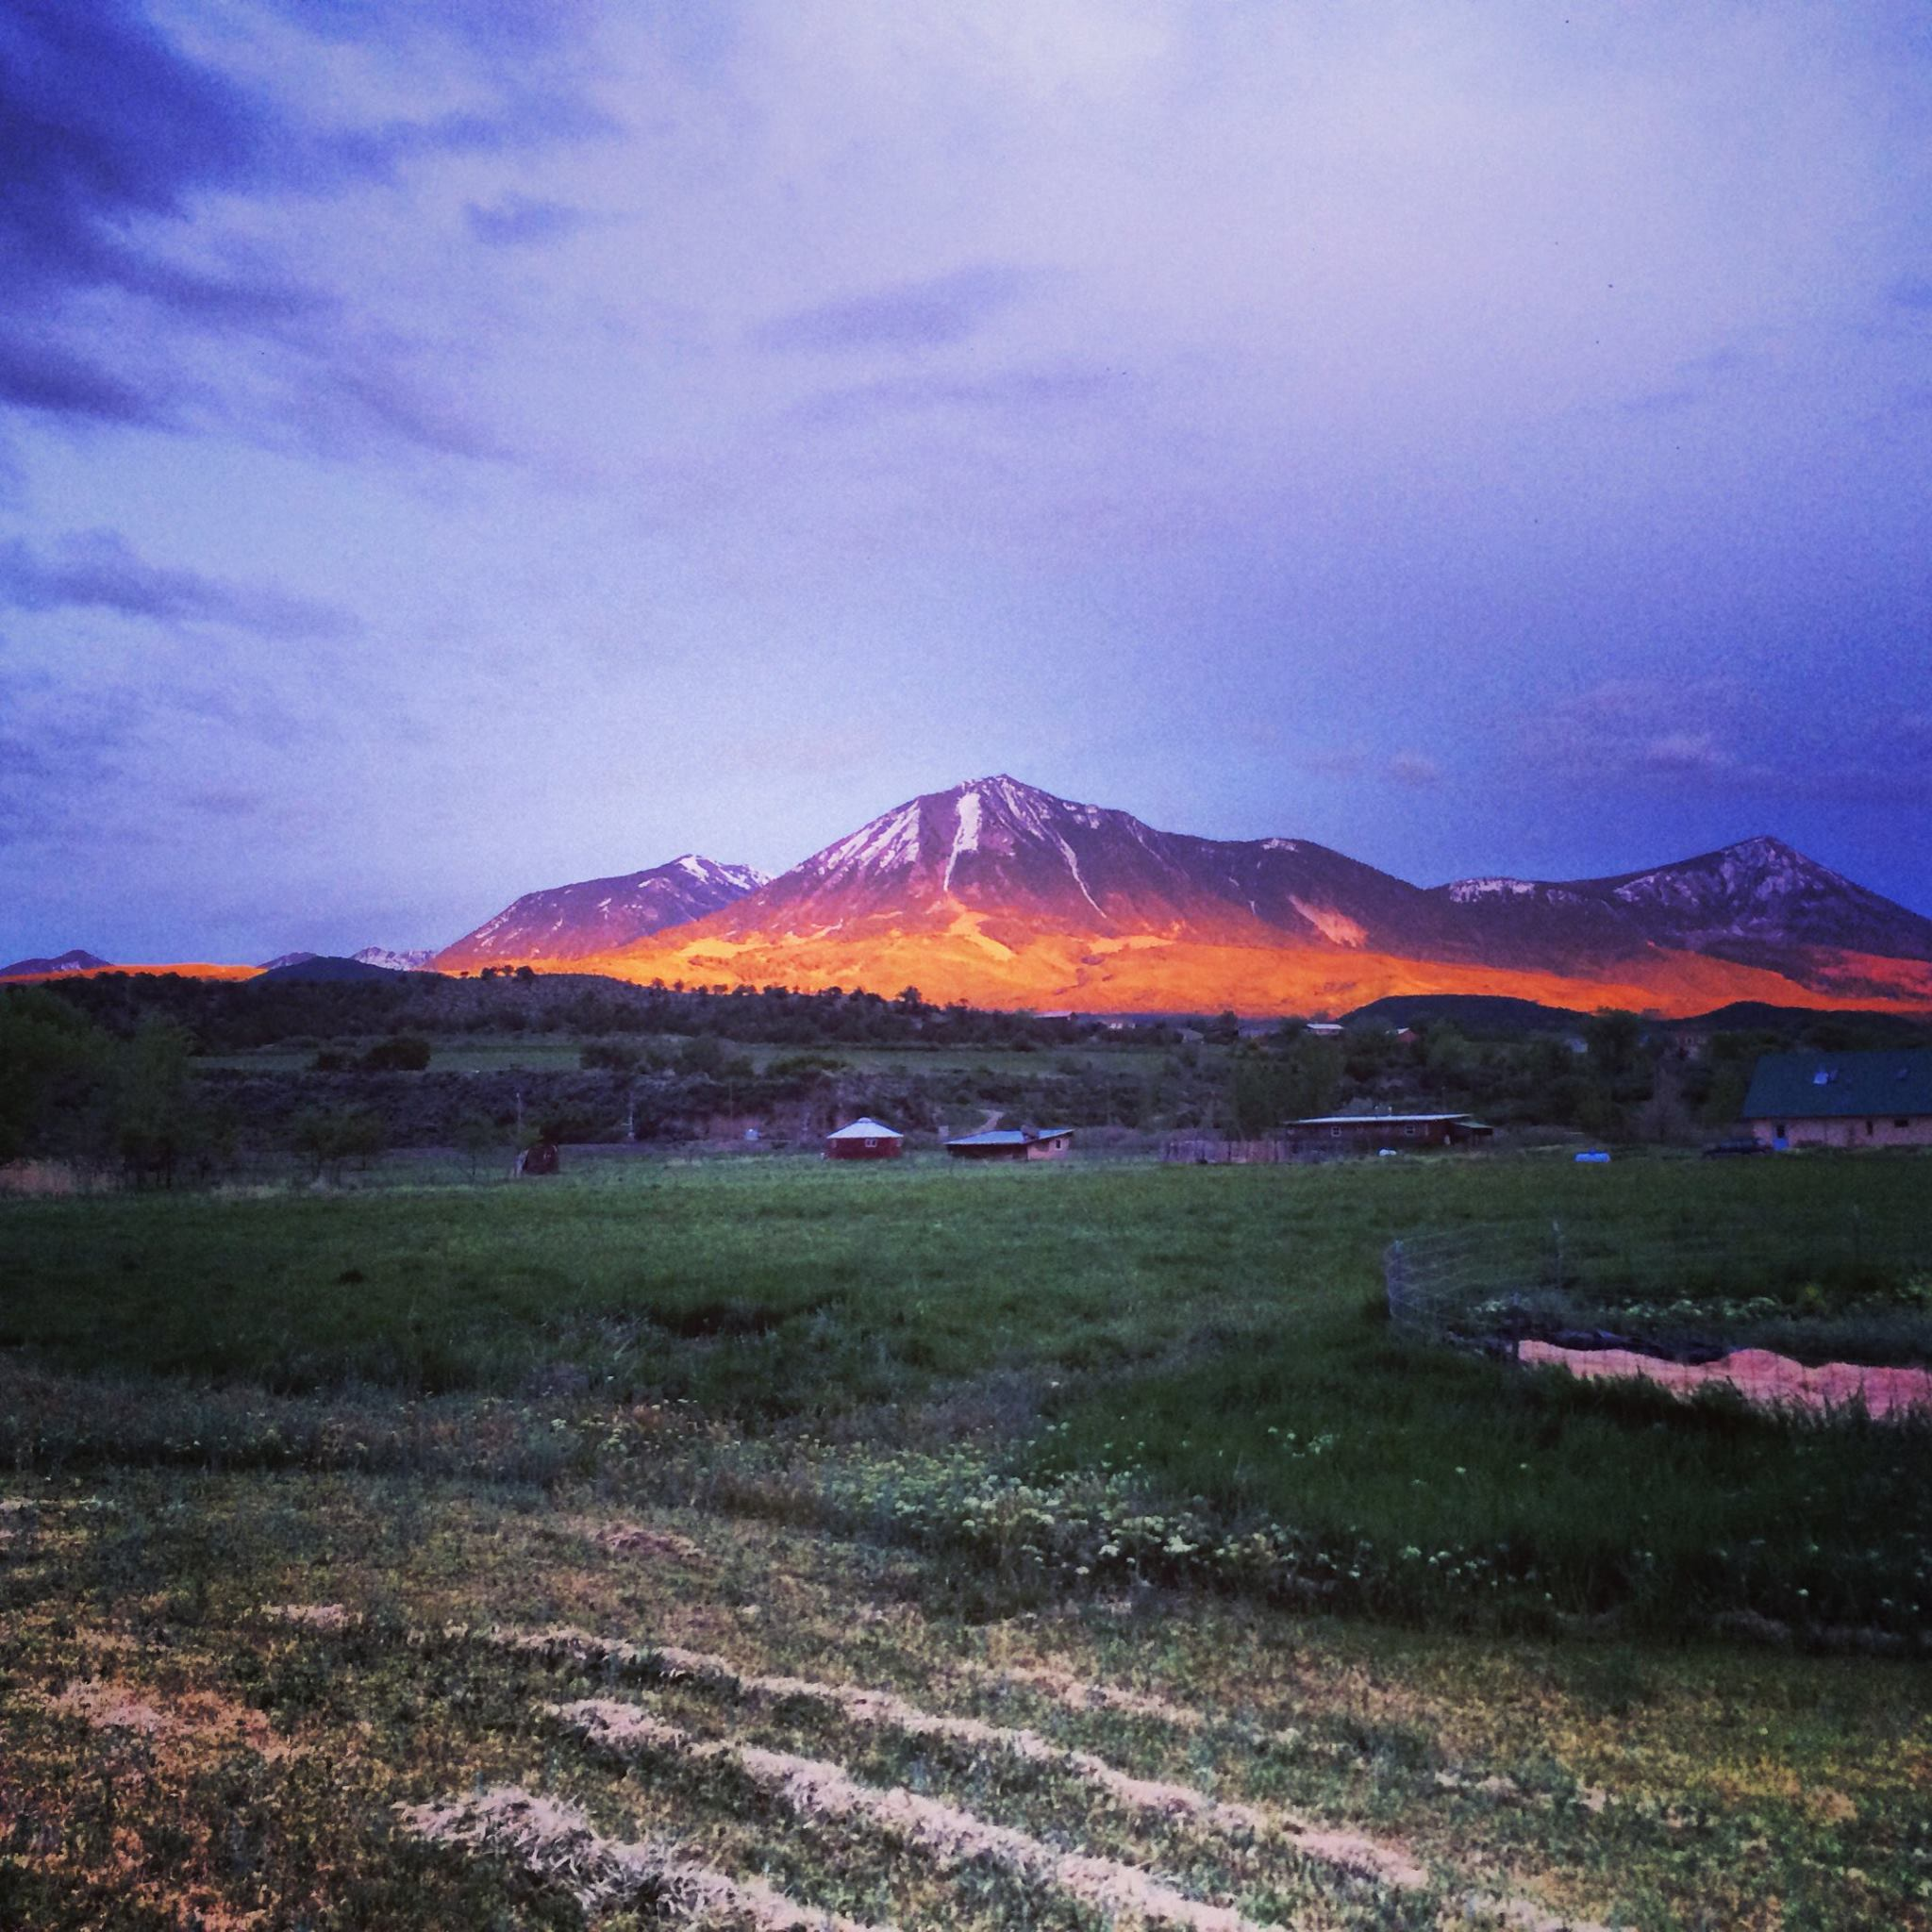 Sunset over Paonia, Colorado